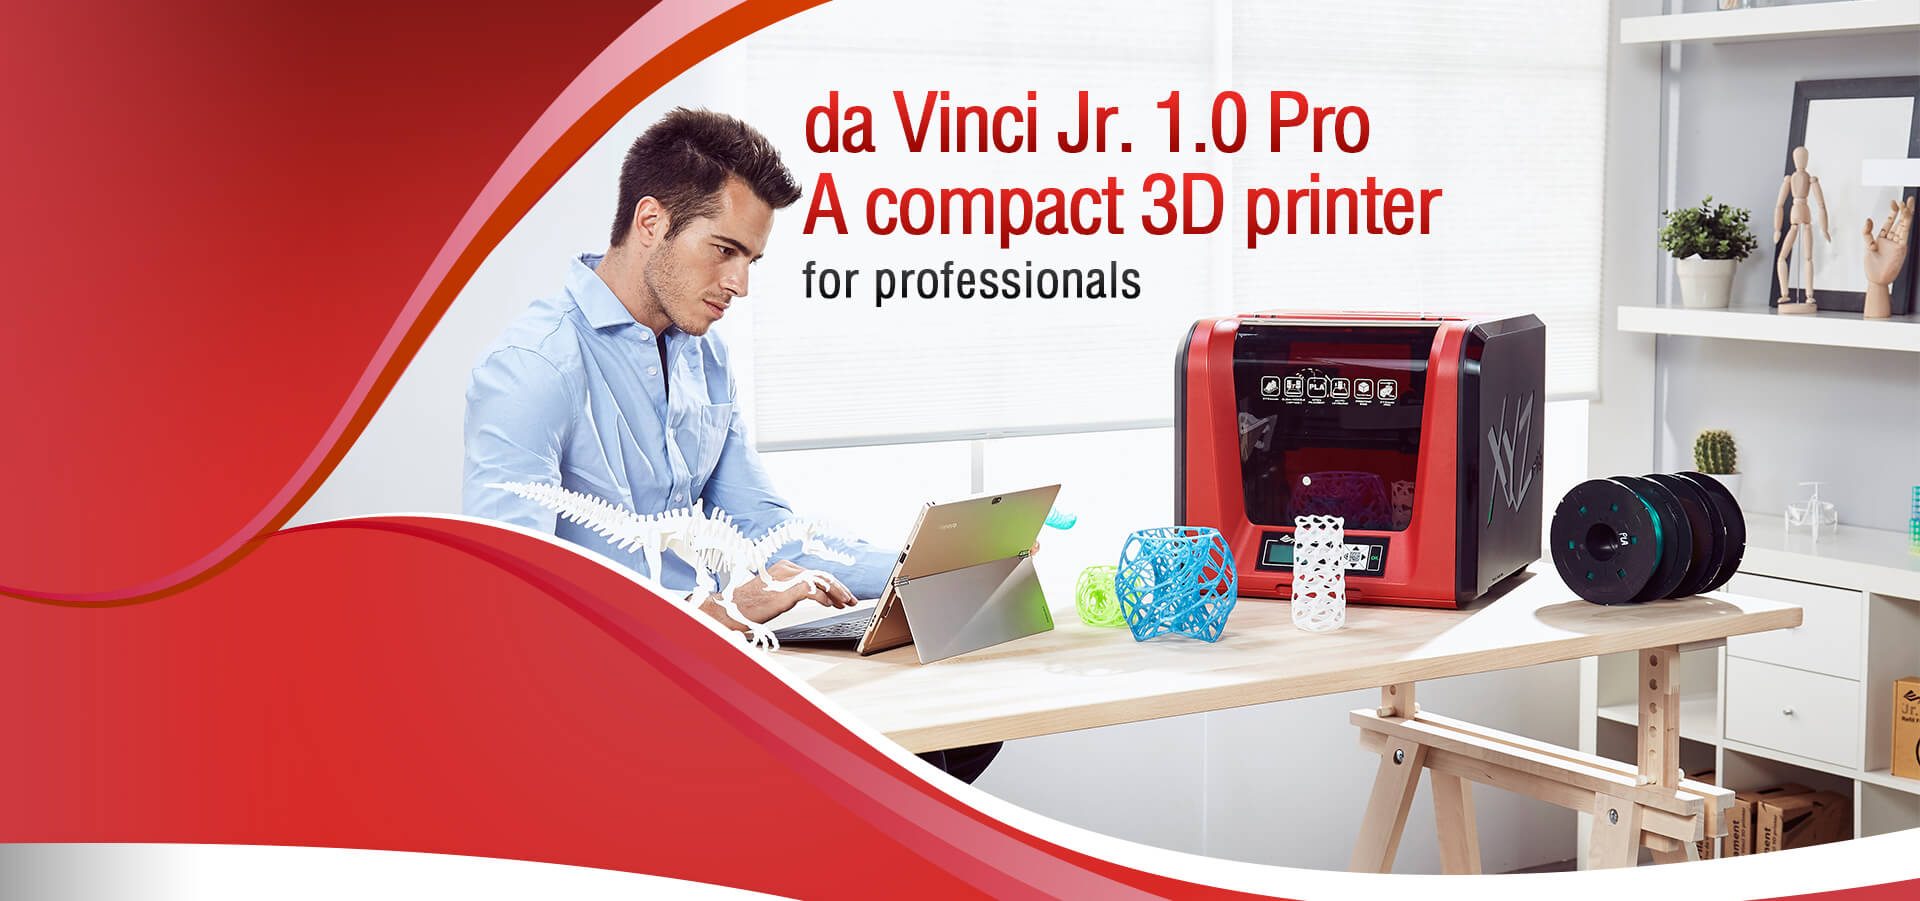 Imprimante 3D Da Vinci Junior 1.0